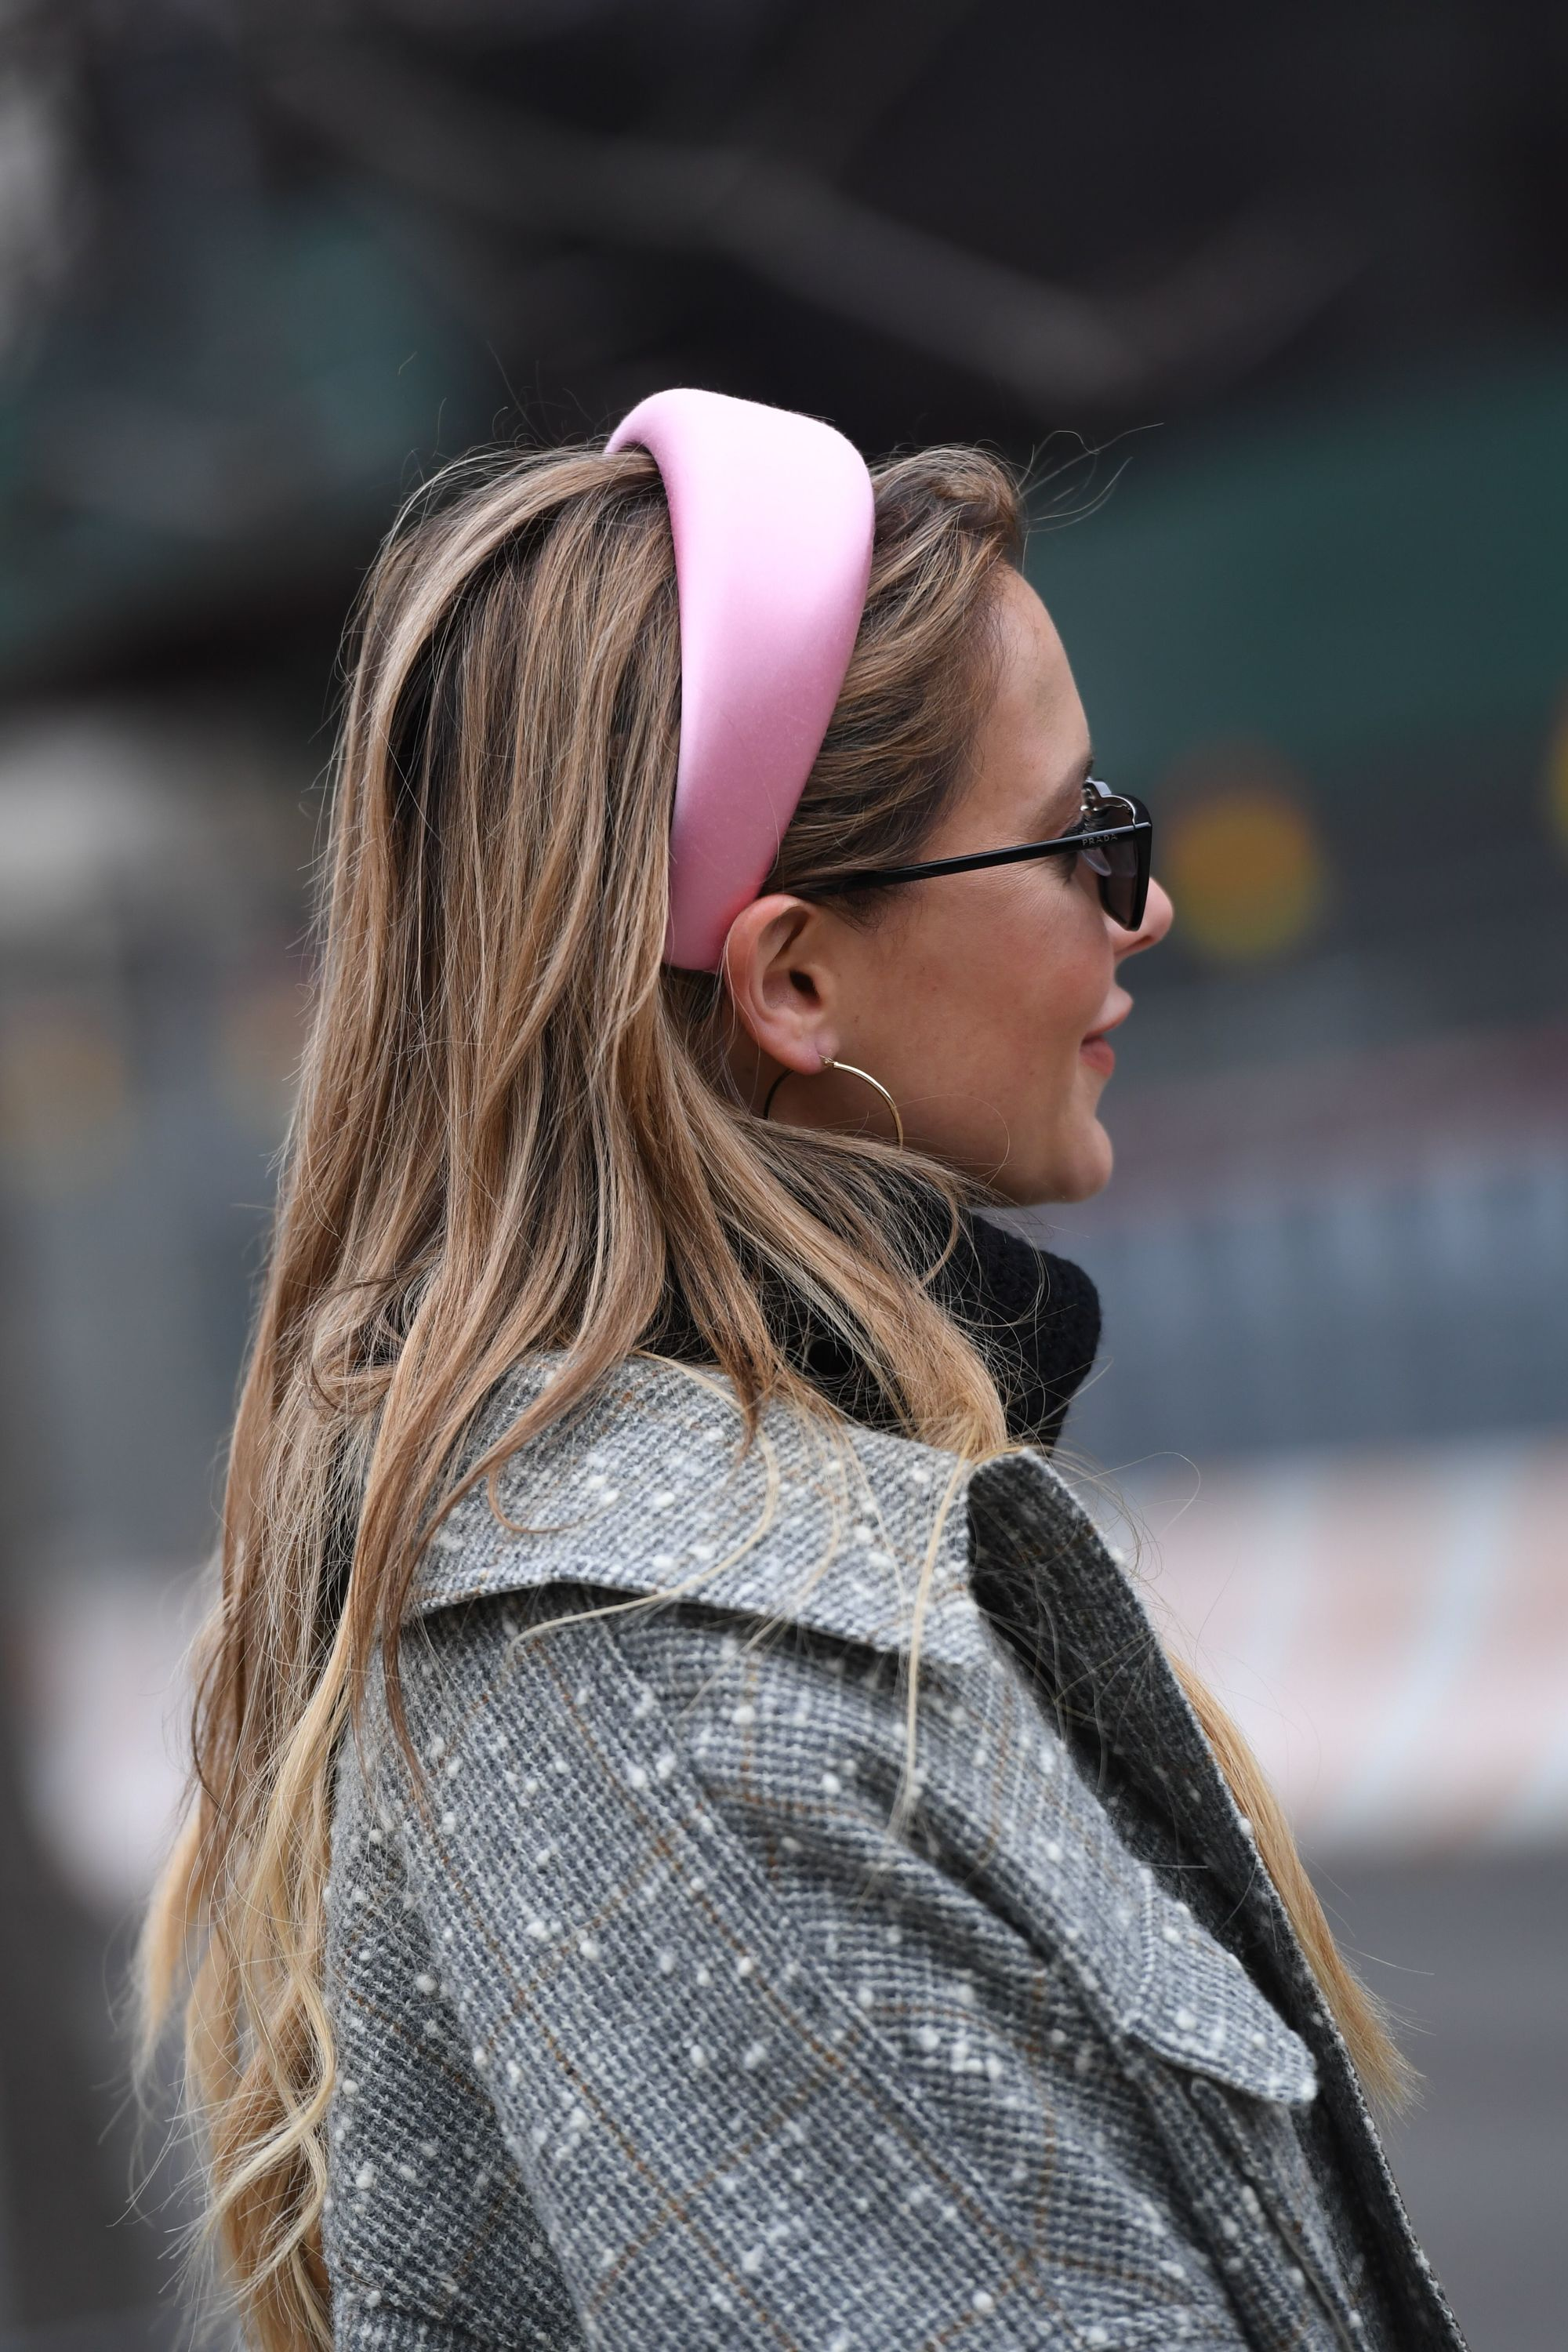 Hair trends 2019: Street style woman with long dirty blonde hair wearing a satin pink headbands and sunglasses.